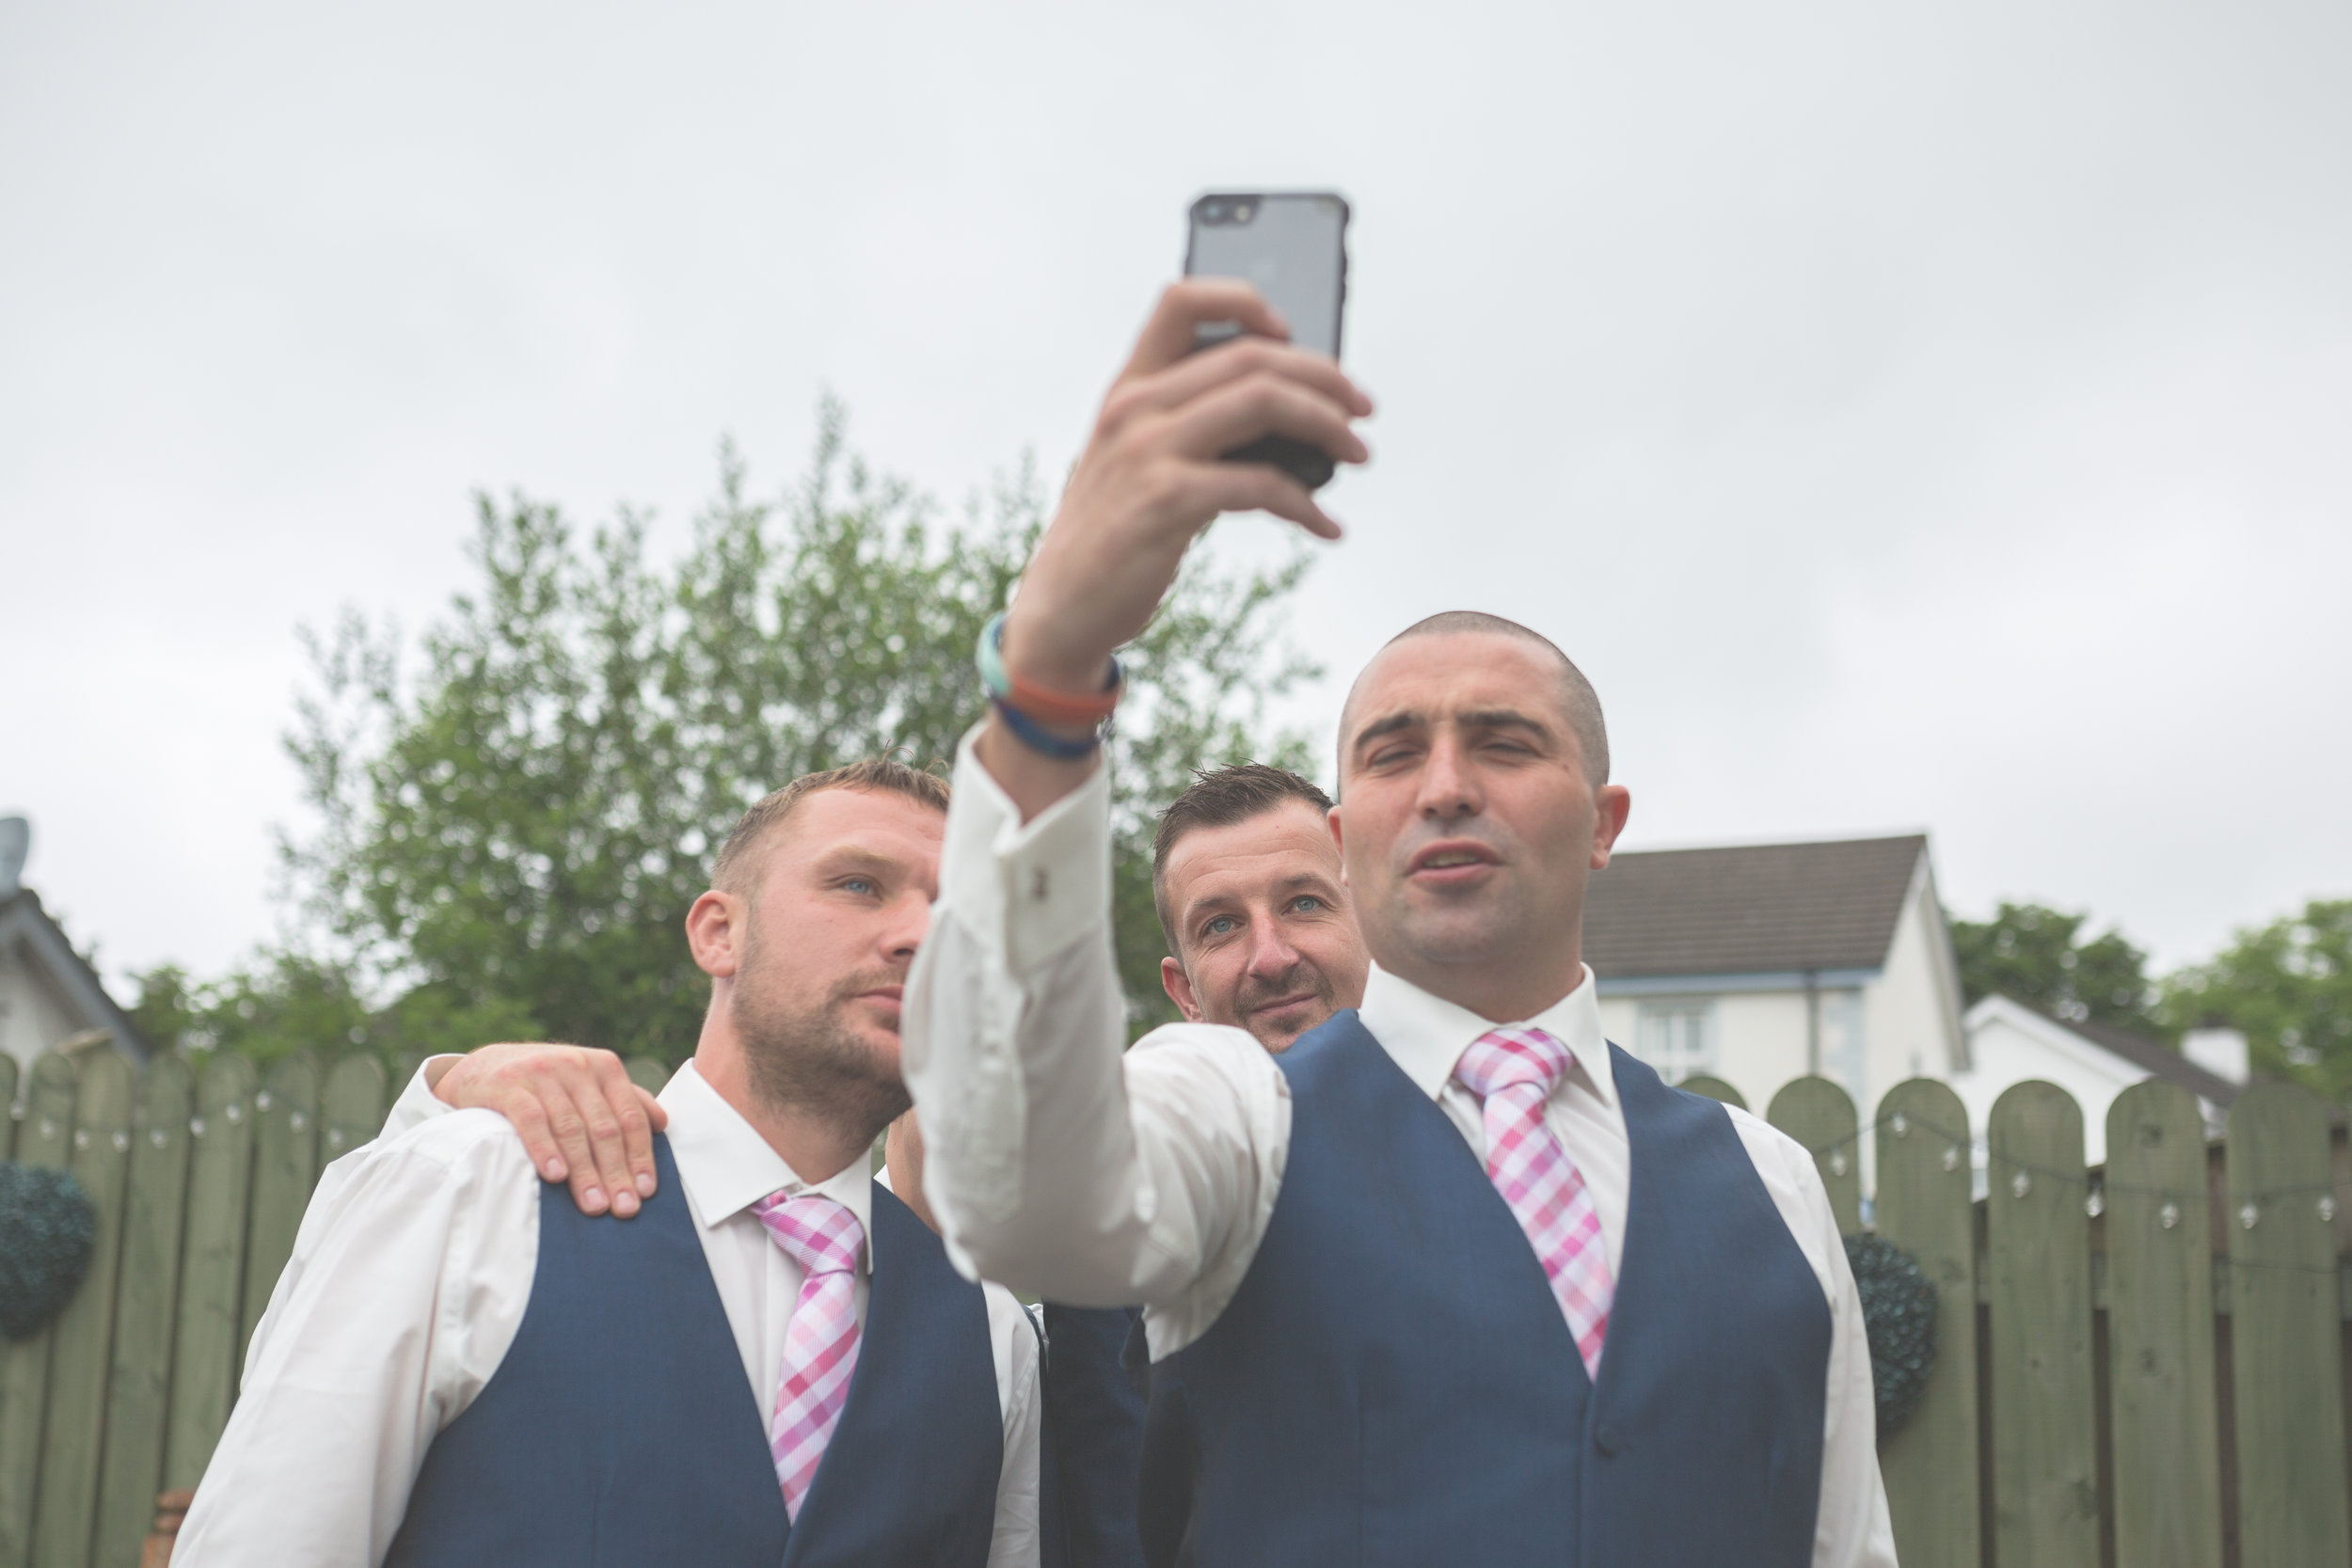 Antoinette & Stephen - Groom & Groomsmen | Brian McEwan Photography | Wedding Photographer Northern Ireland 67.jpg